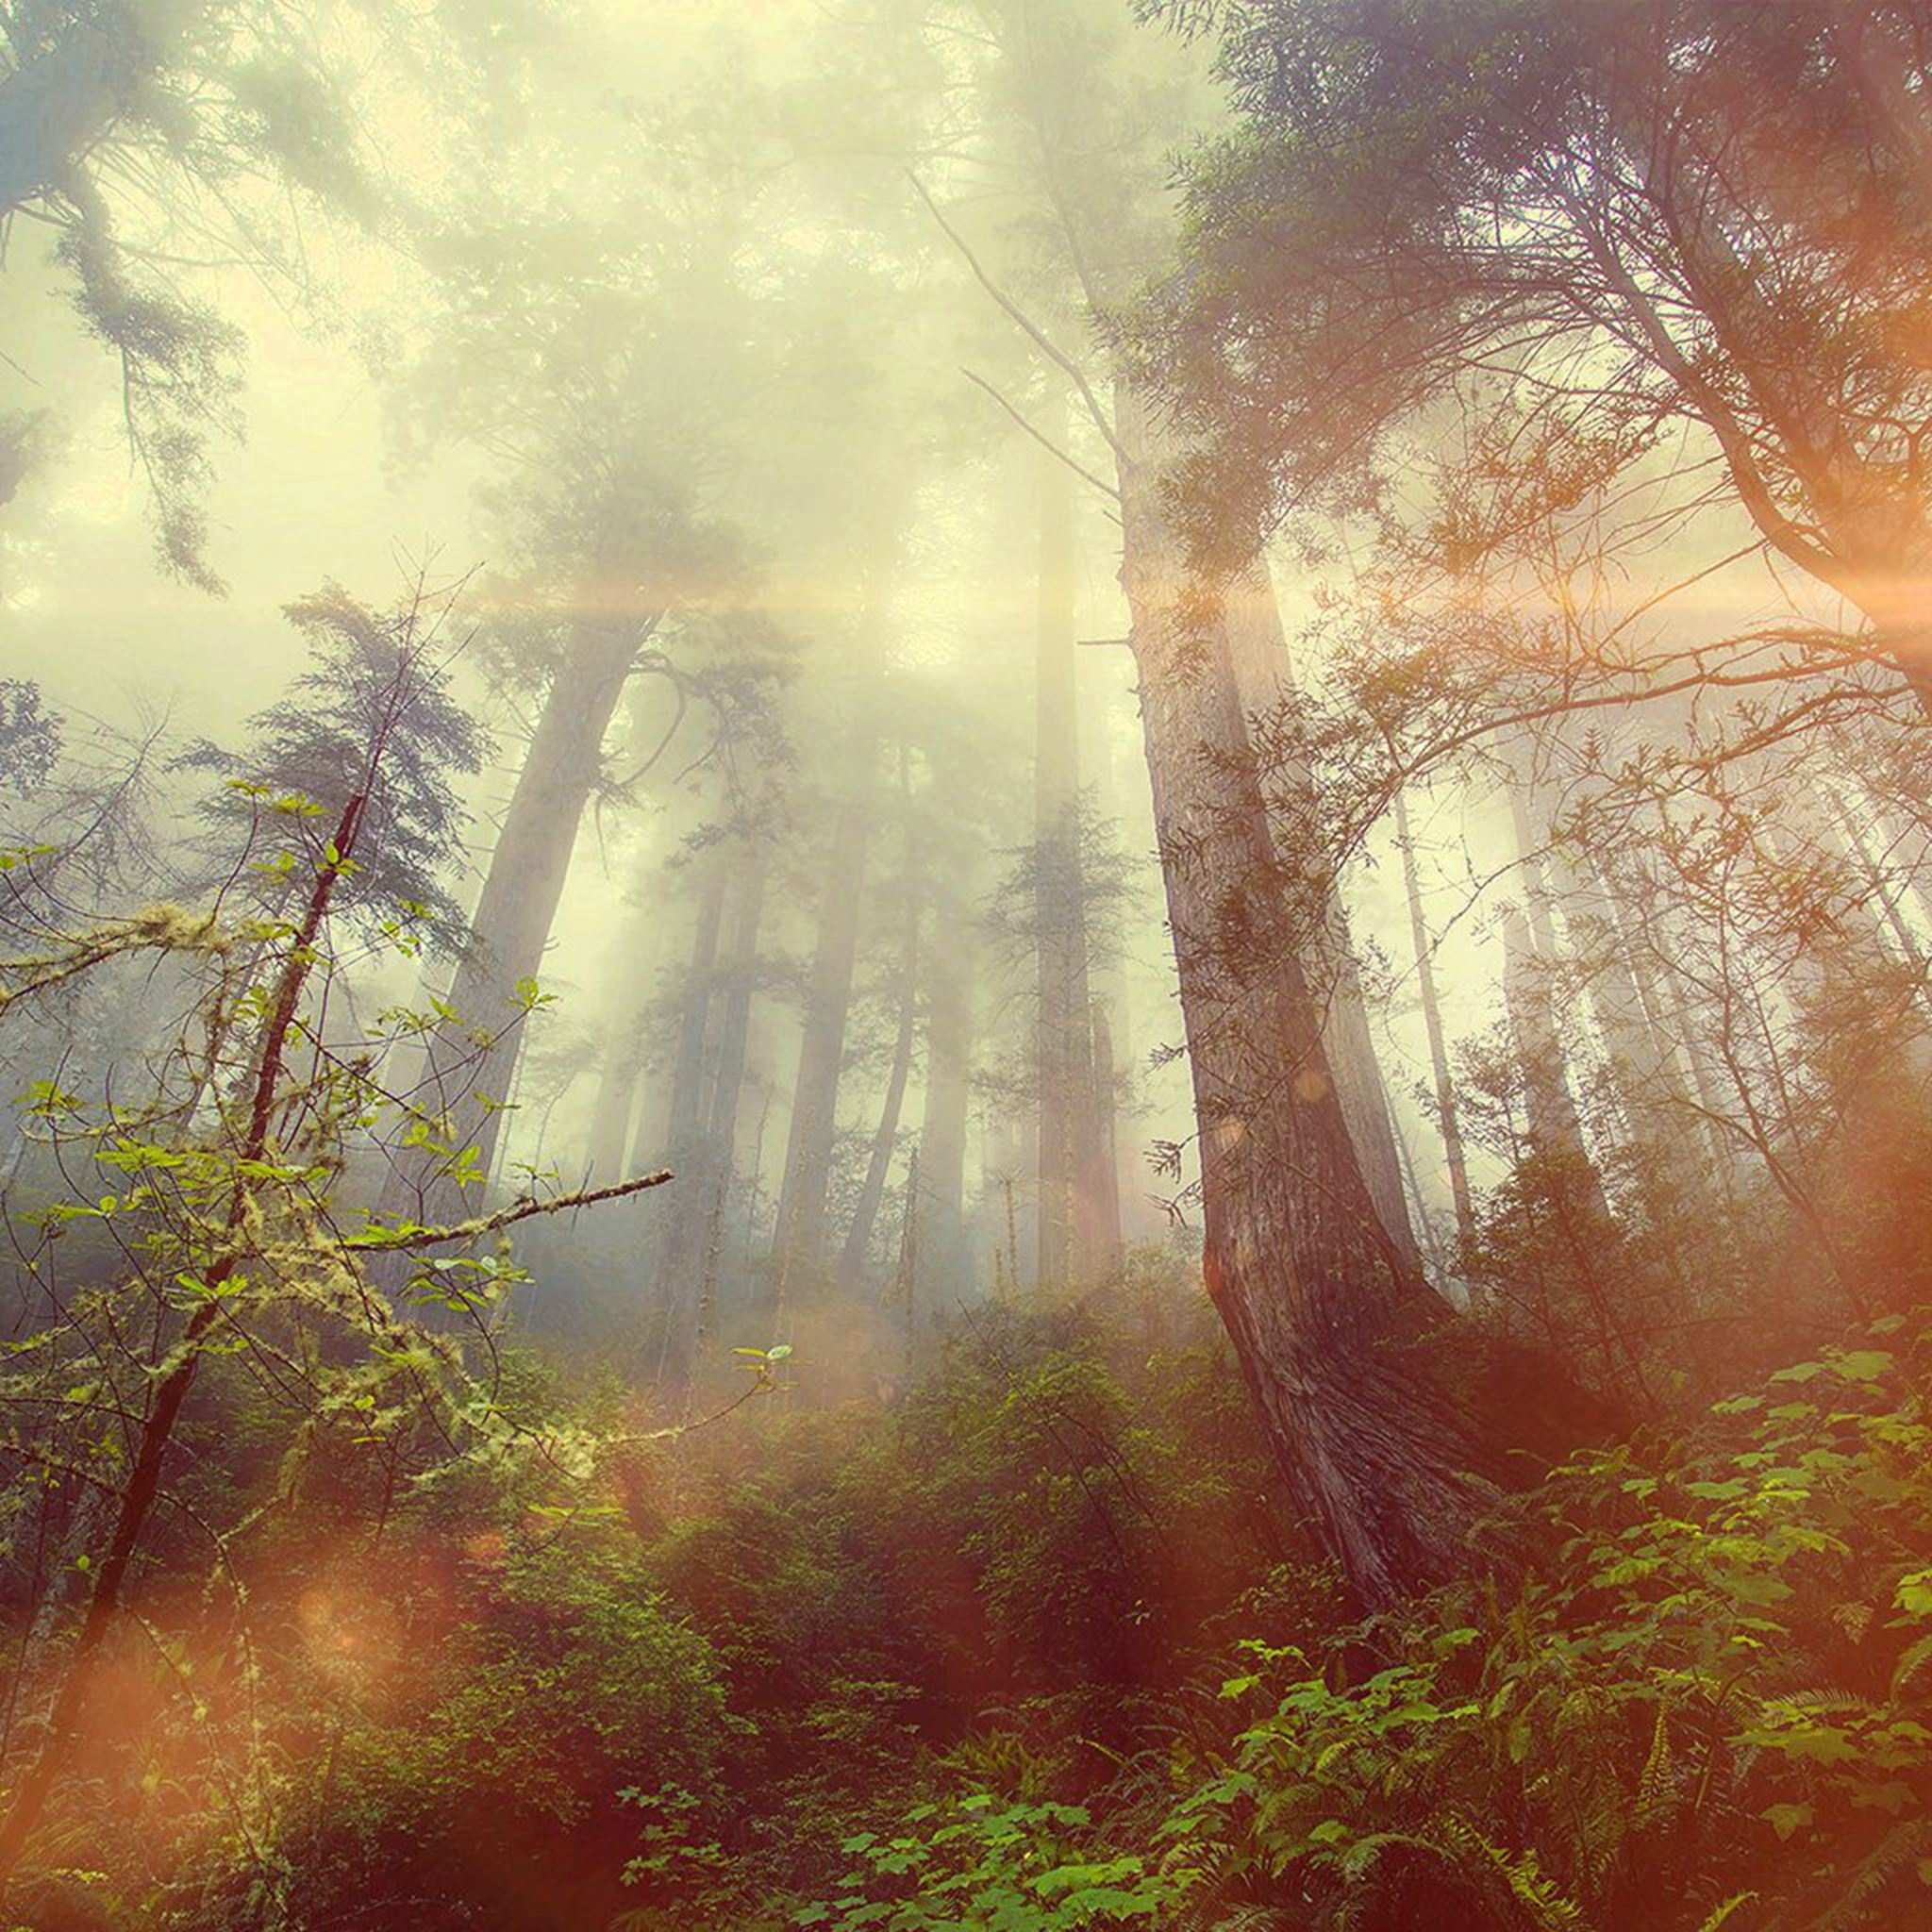 Forest Wood Fog Flare Red Nature Green iPad Air wallpaper